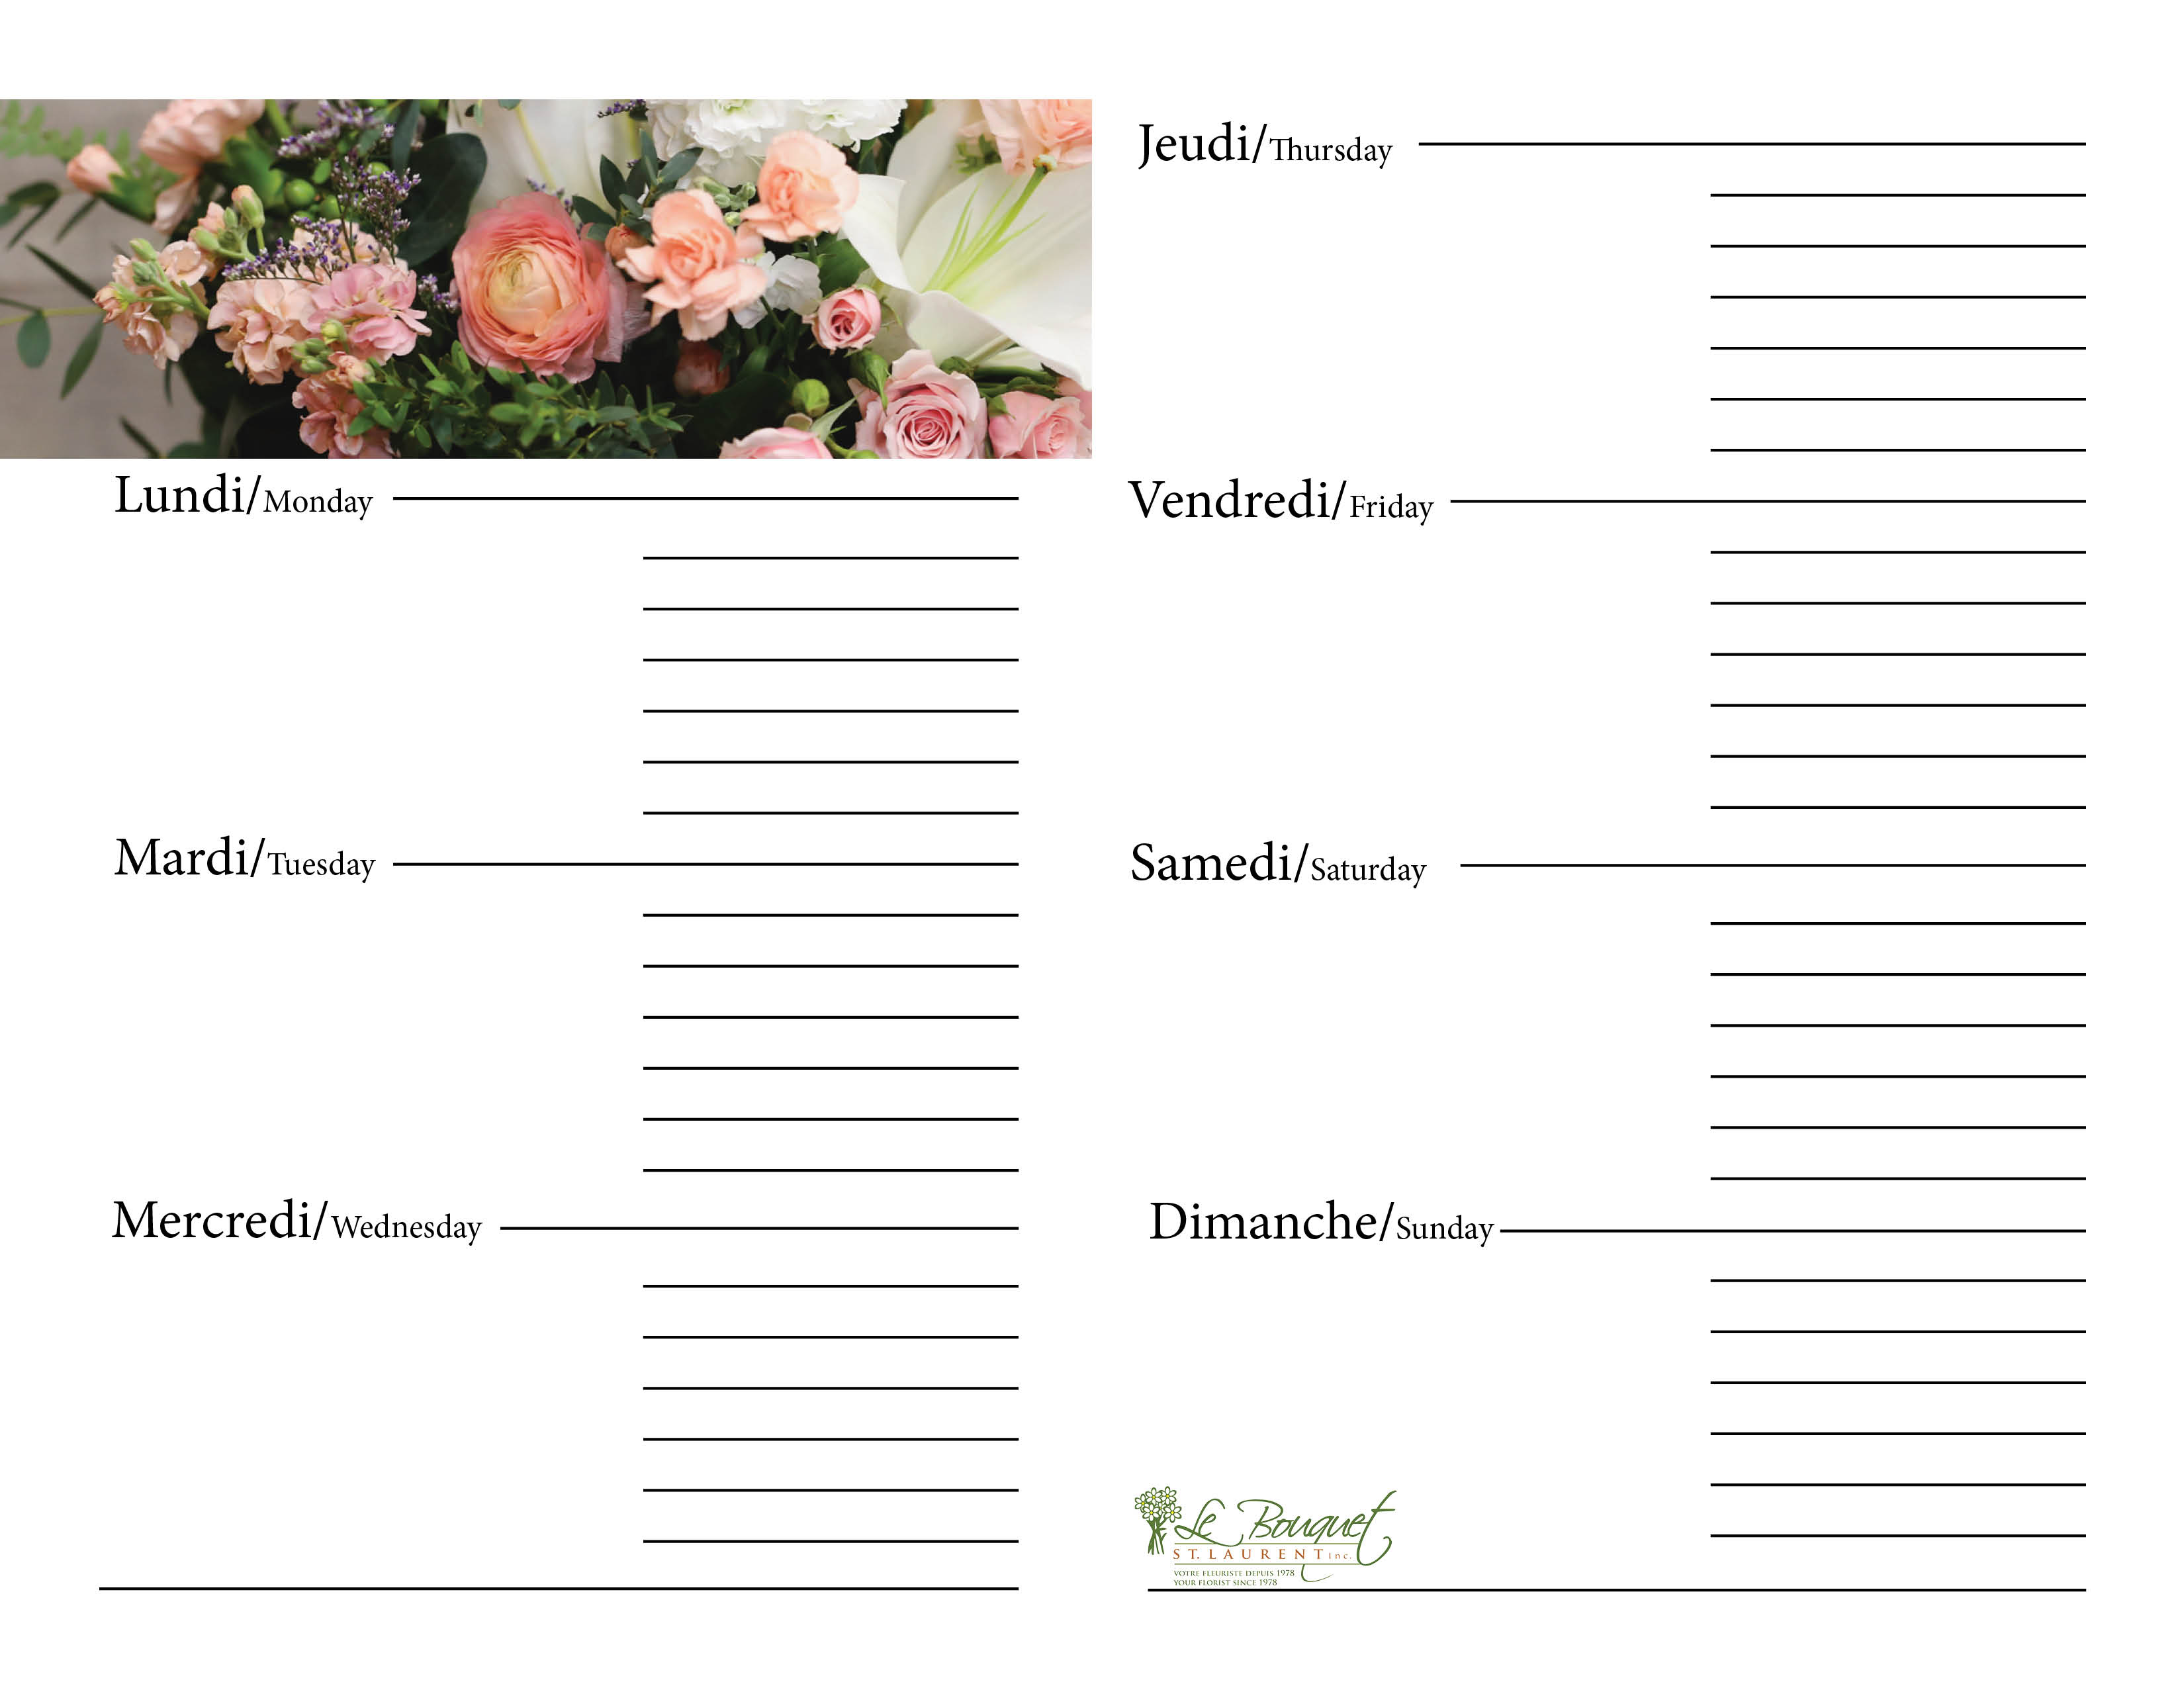 Free downloadable calendar journal from Montreal flower shop Le Bouquet St Laurent